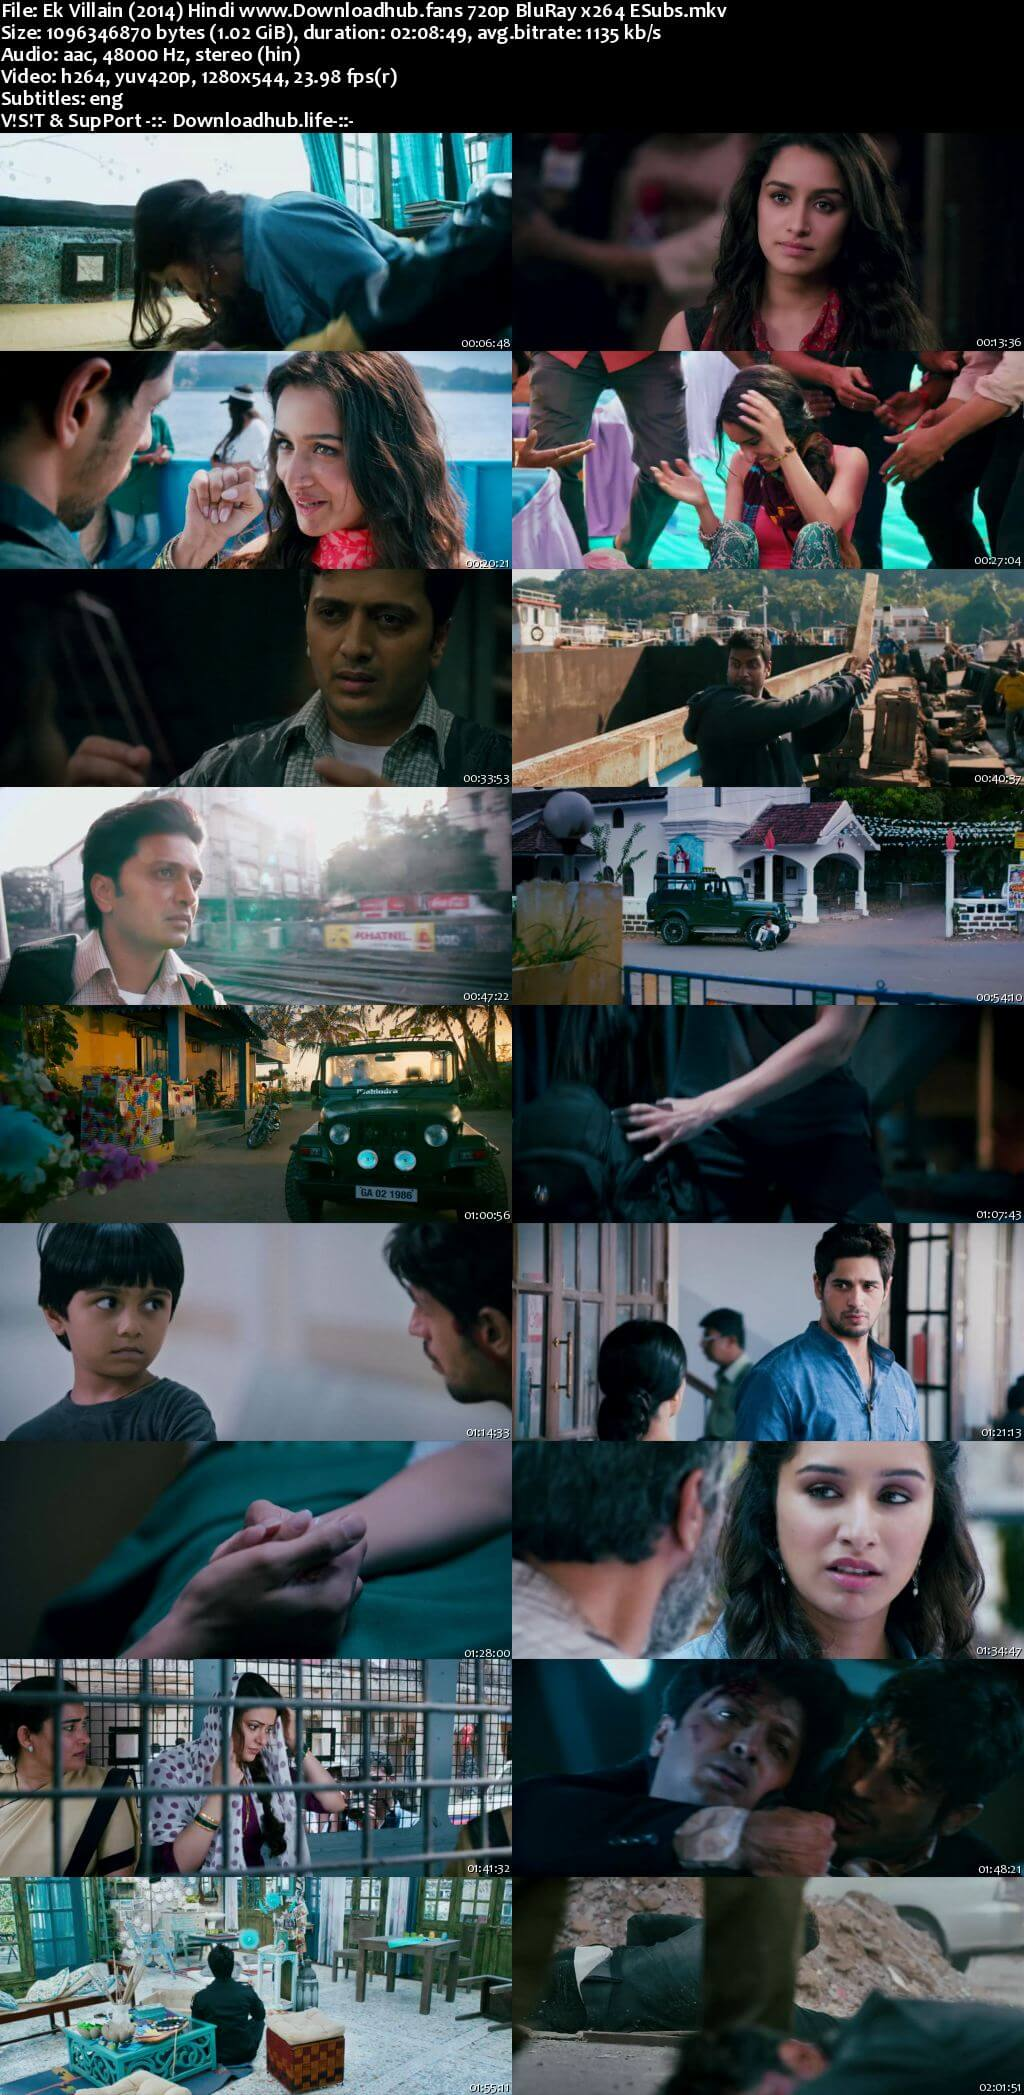 Ek Villain 2014 Hindi 720p BluRay ESubs